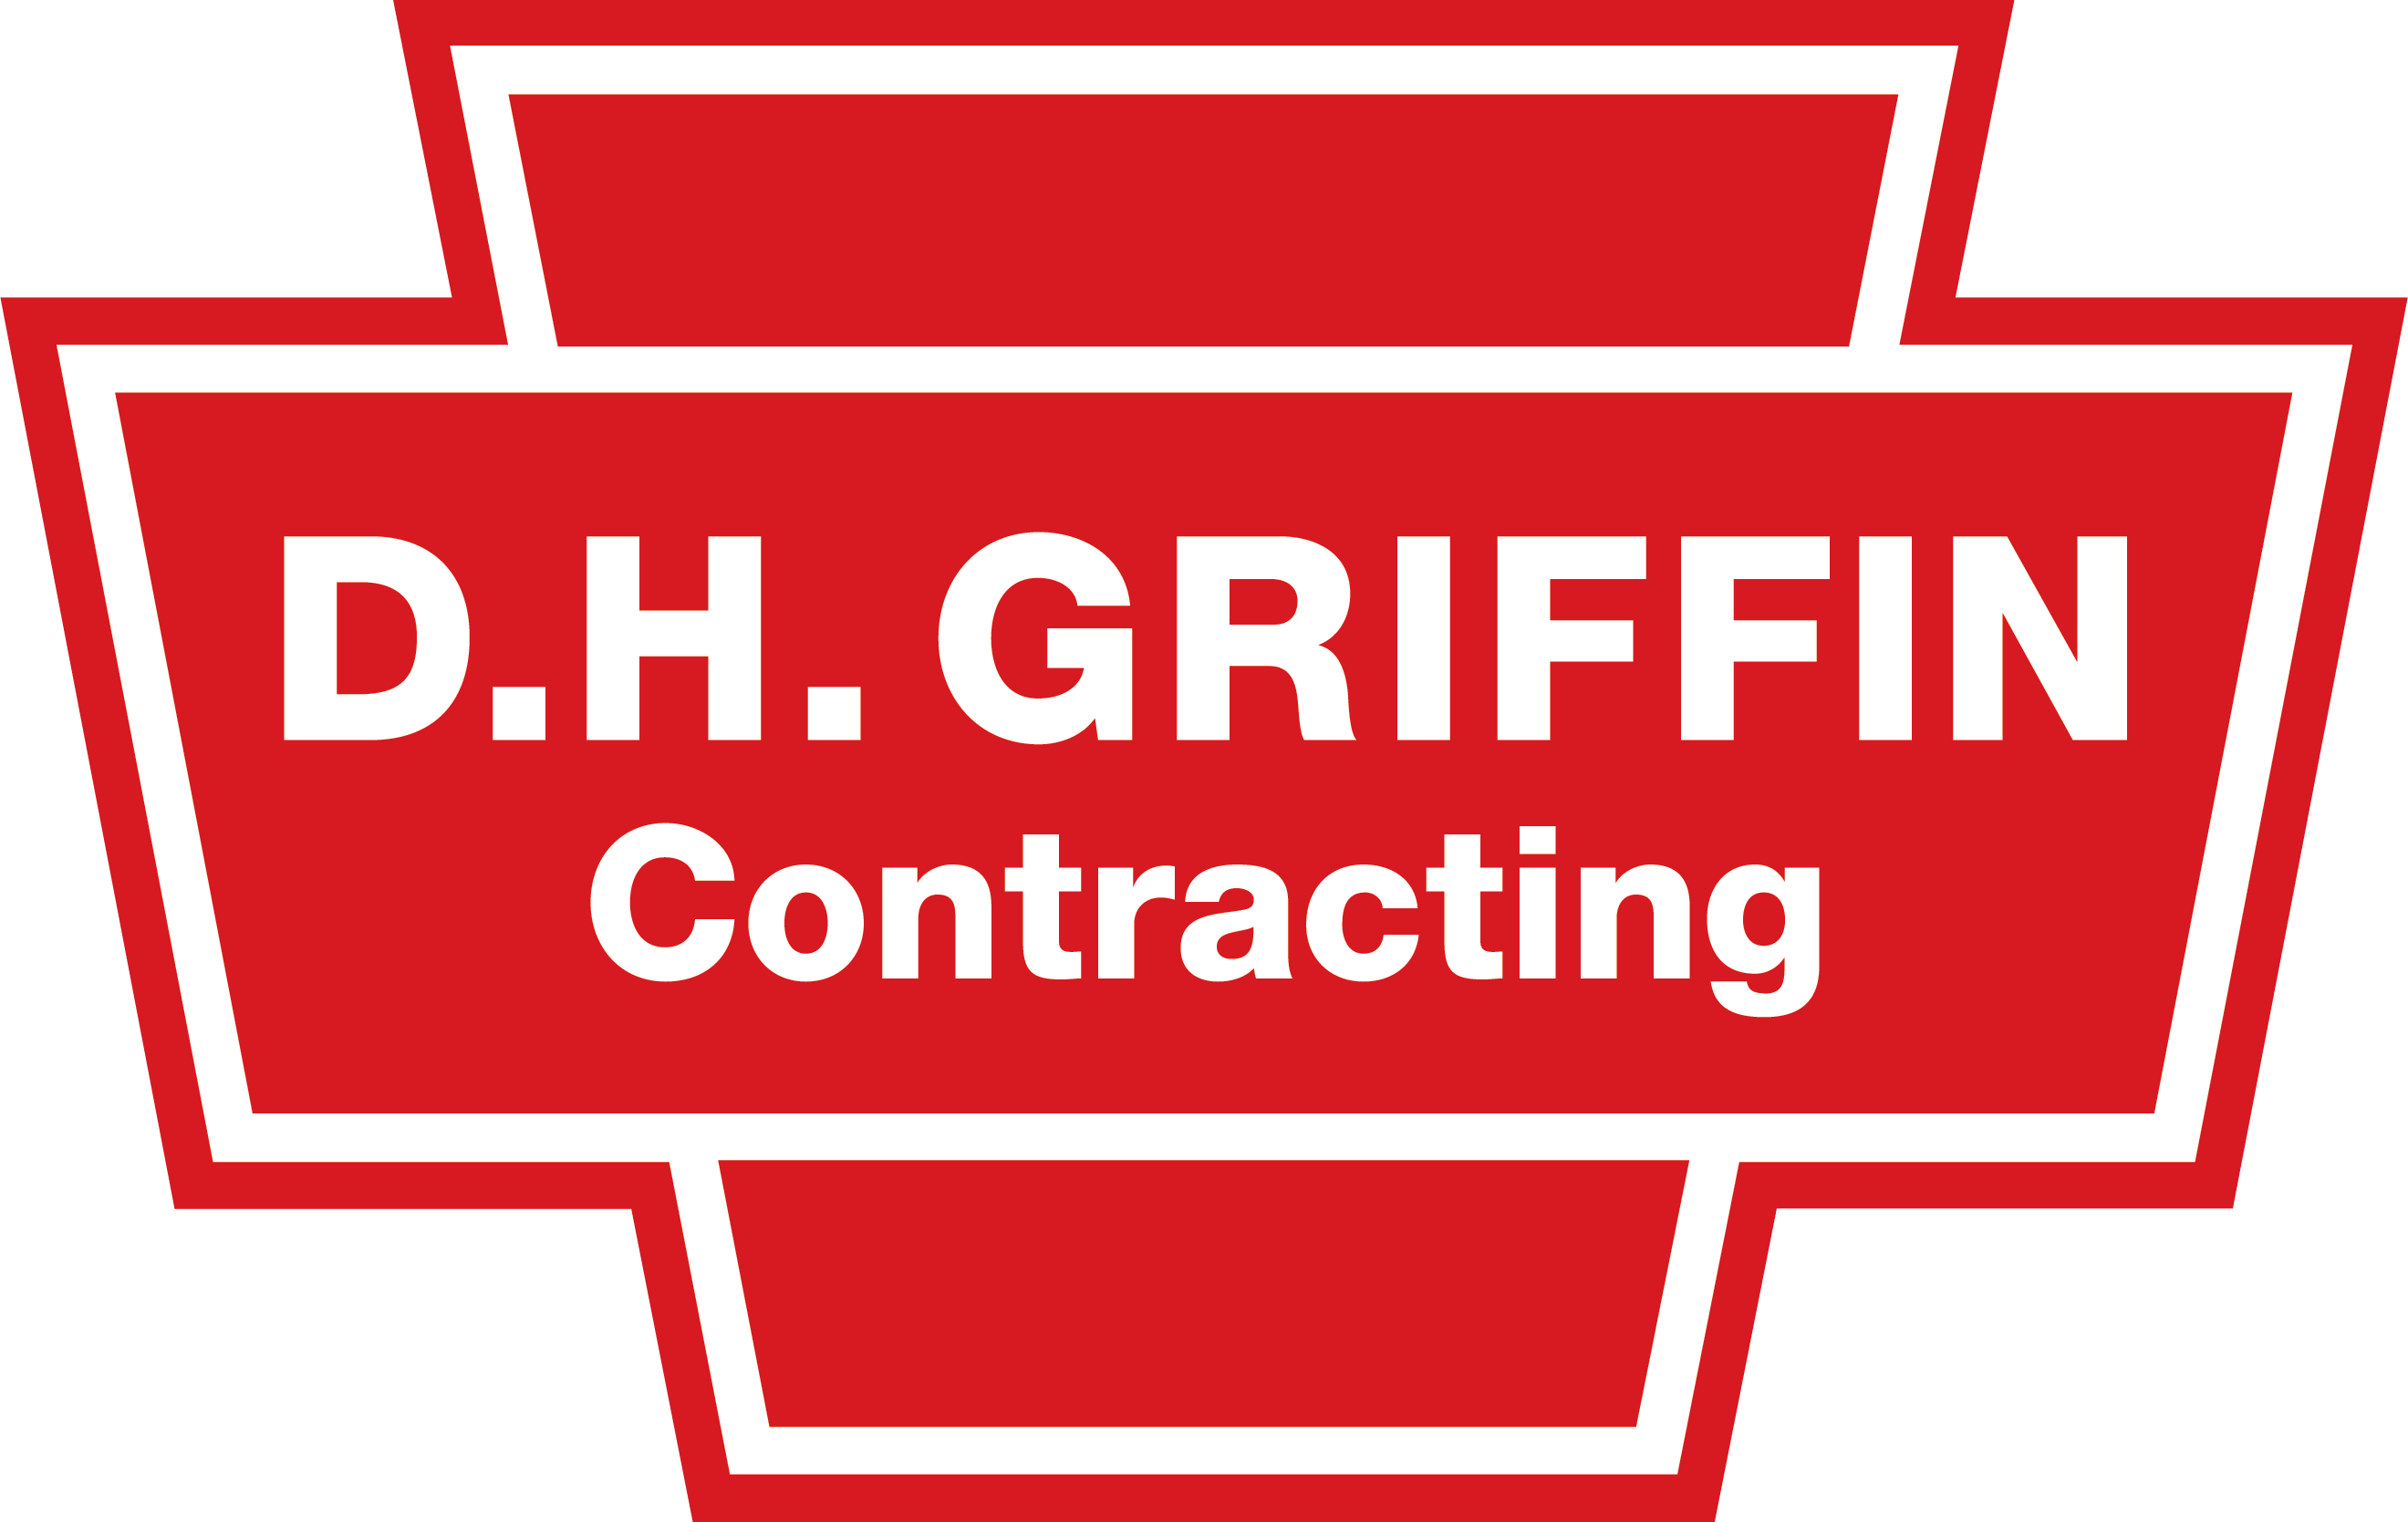 D. H. Griffin Contracting Logo